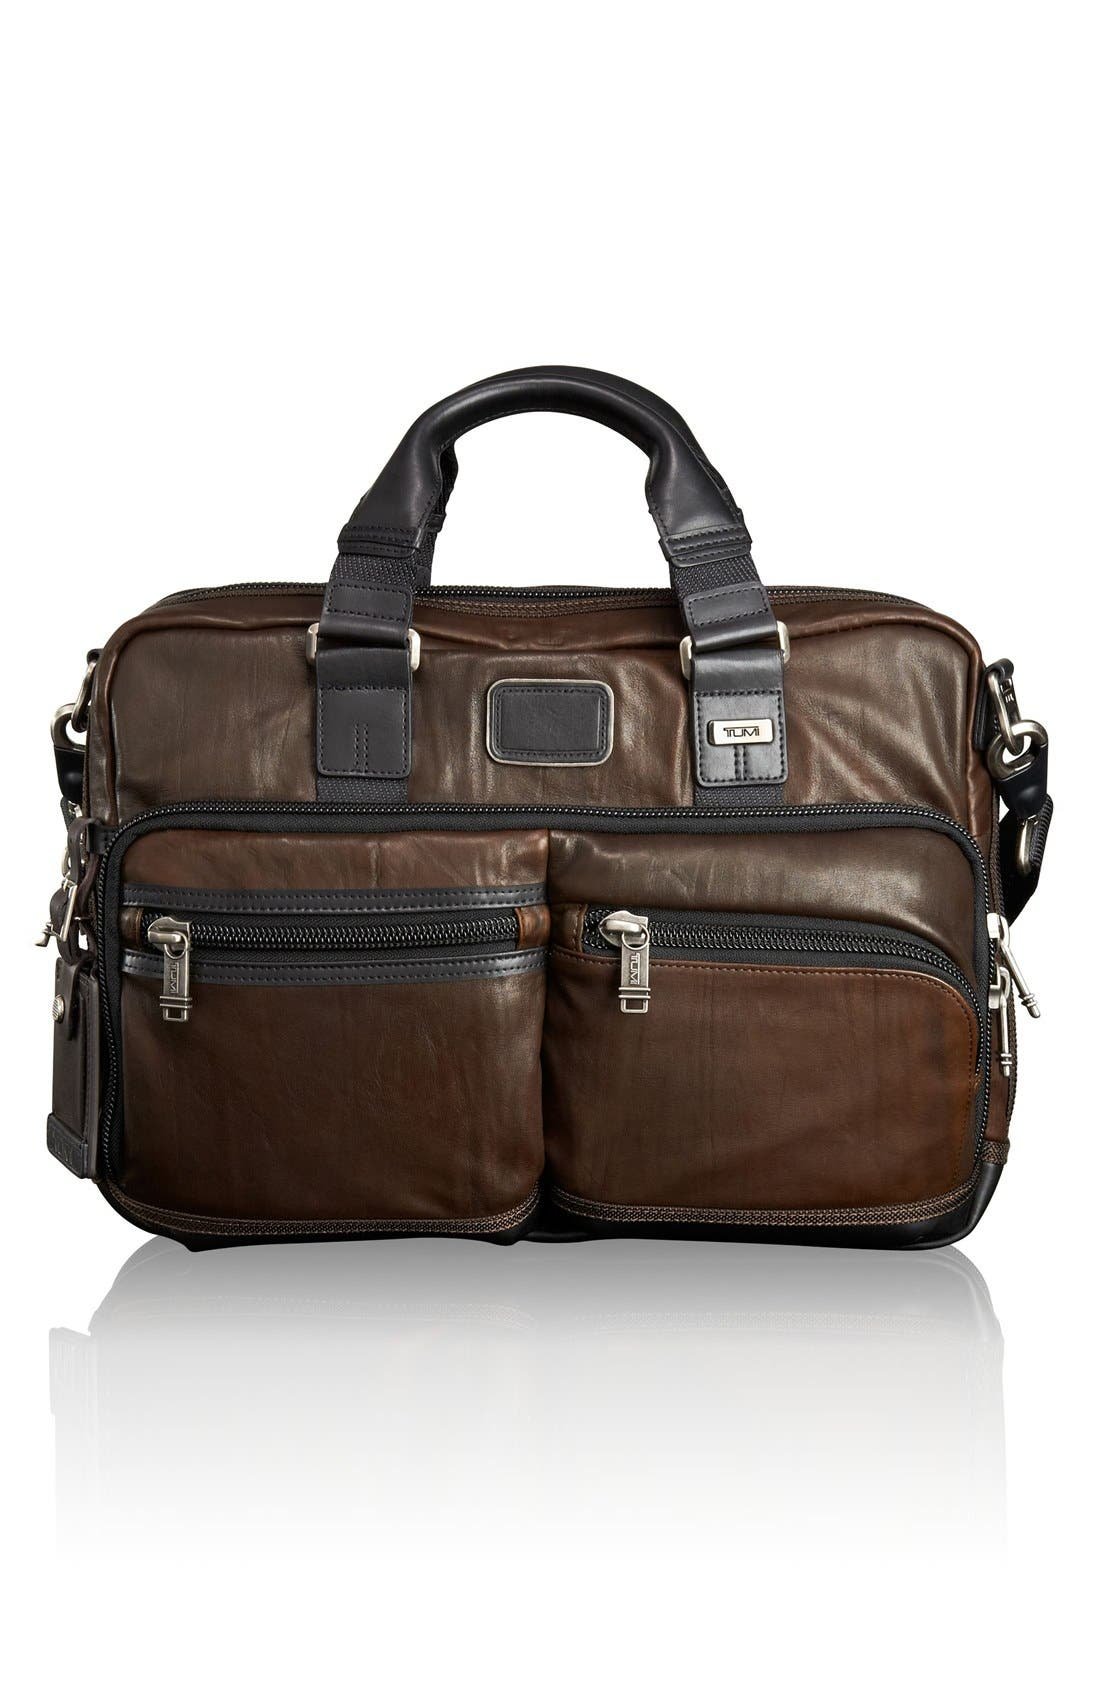 Alternate Image 1 Selected - Tumi 'Bravo' Leather Commuter Briefcase